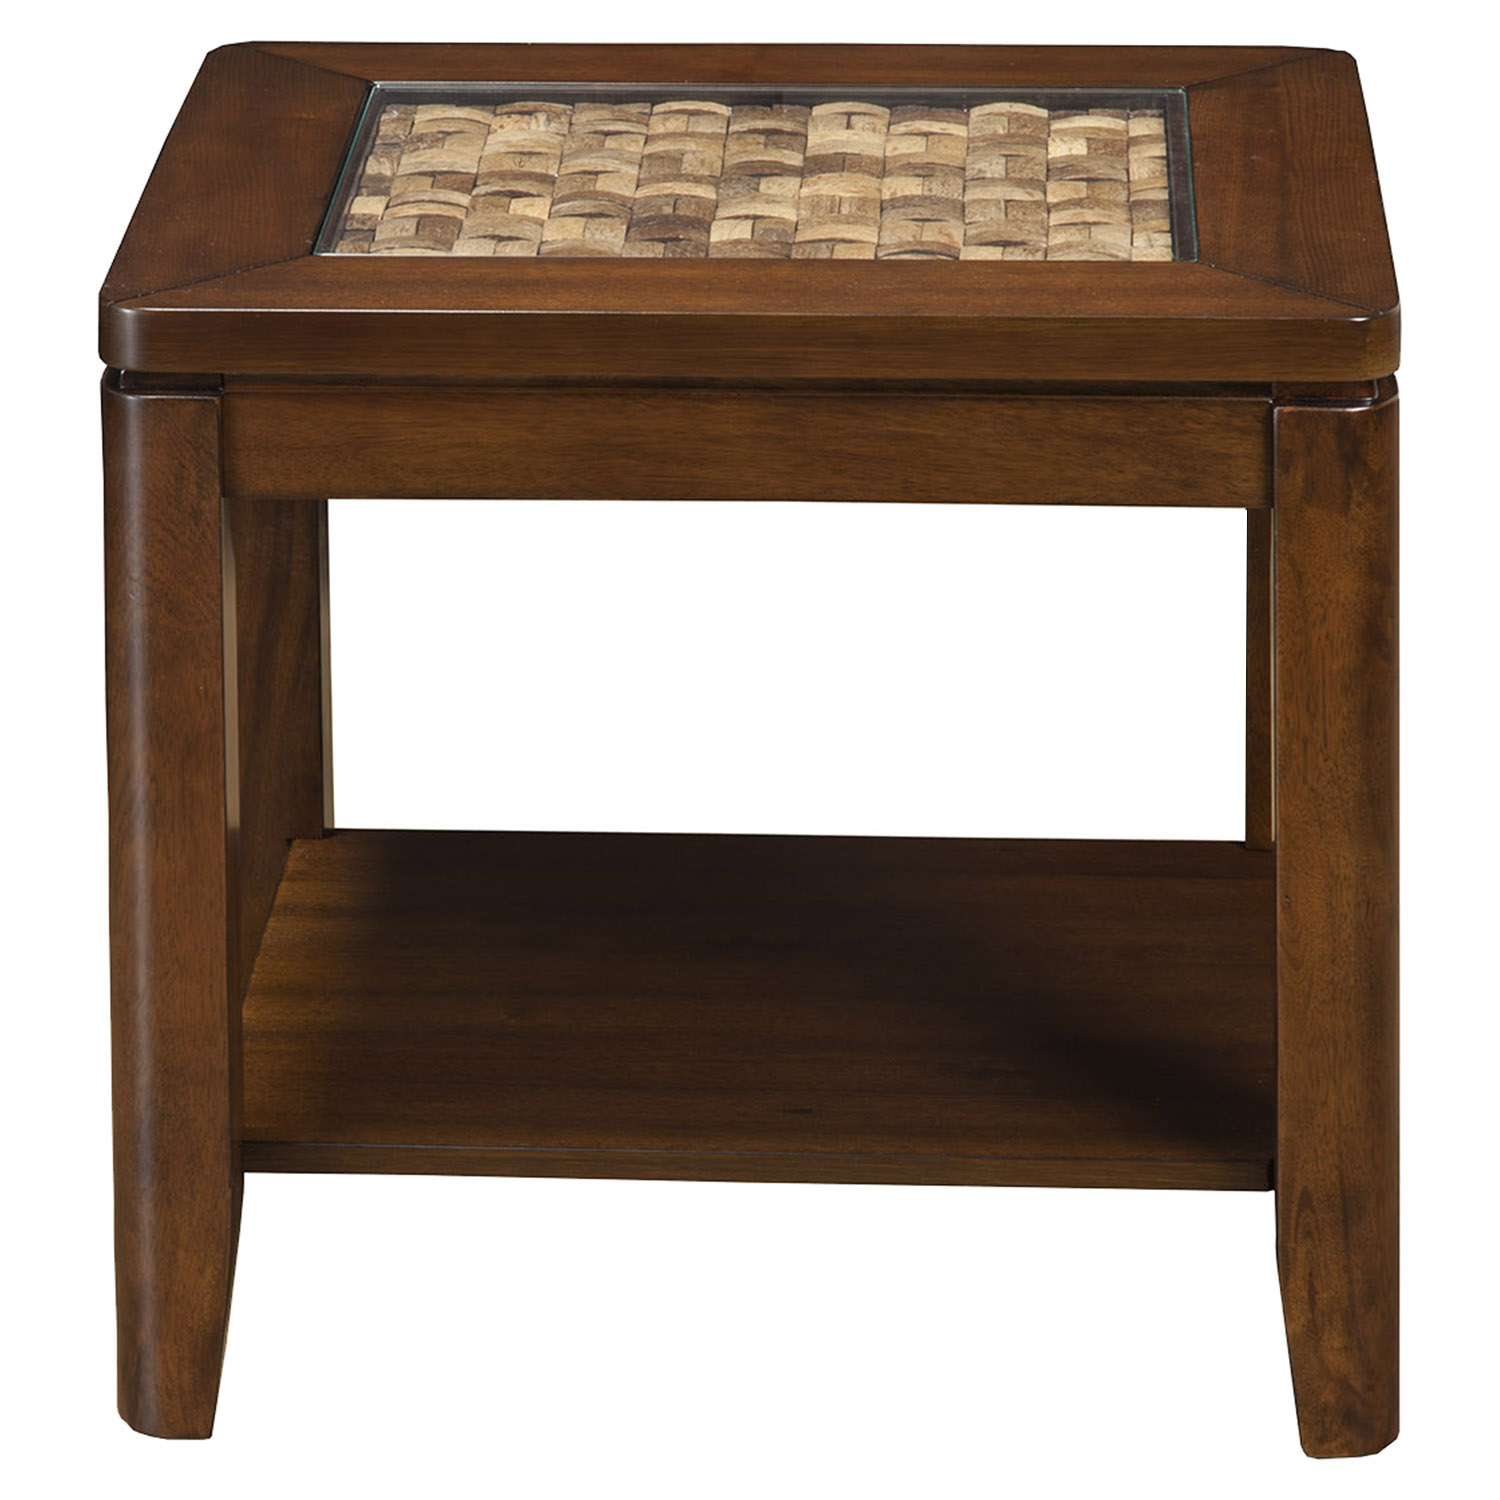 Granada end table glass insert and shelf brown merlot for Kitchen table with glass insert